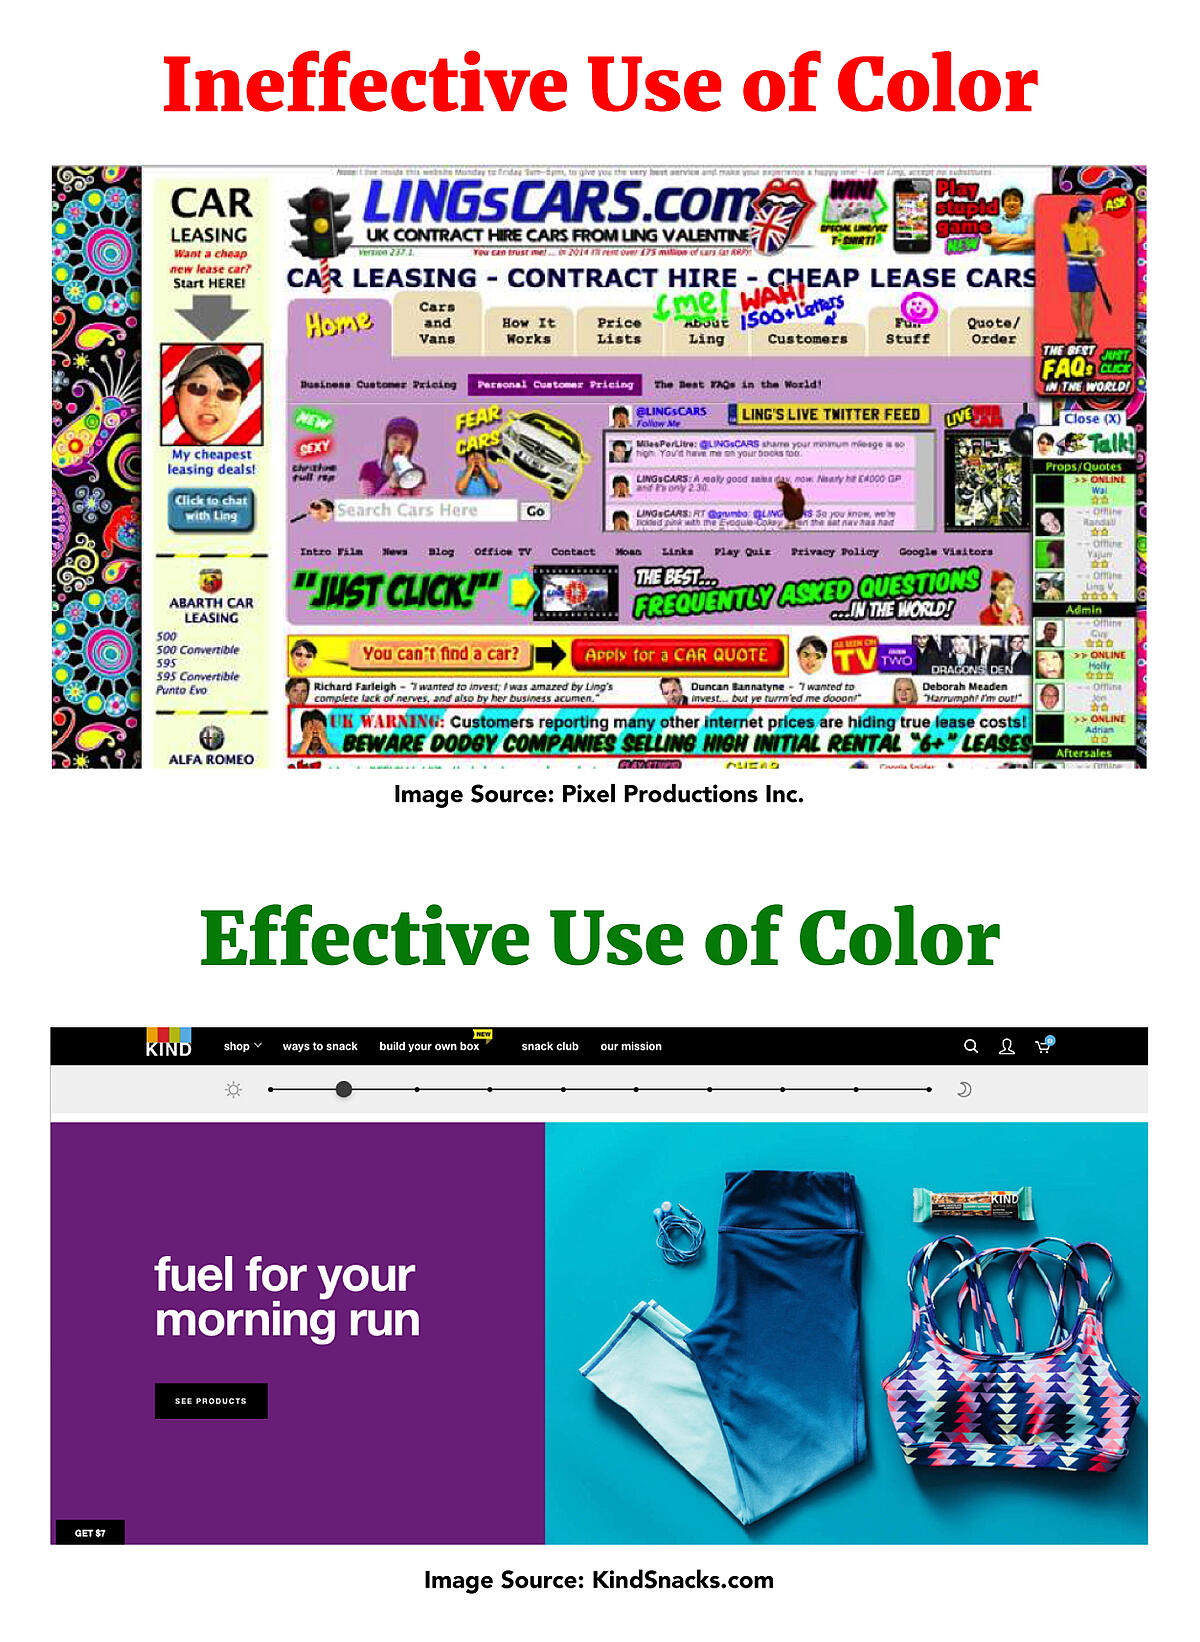 Ineffective vs. Effective Use of Color